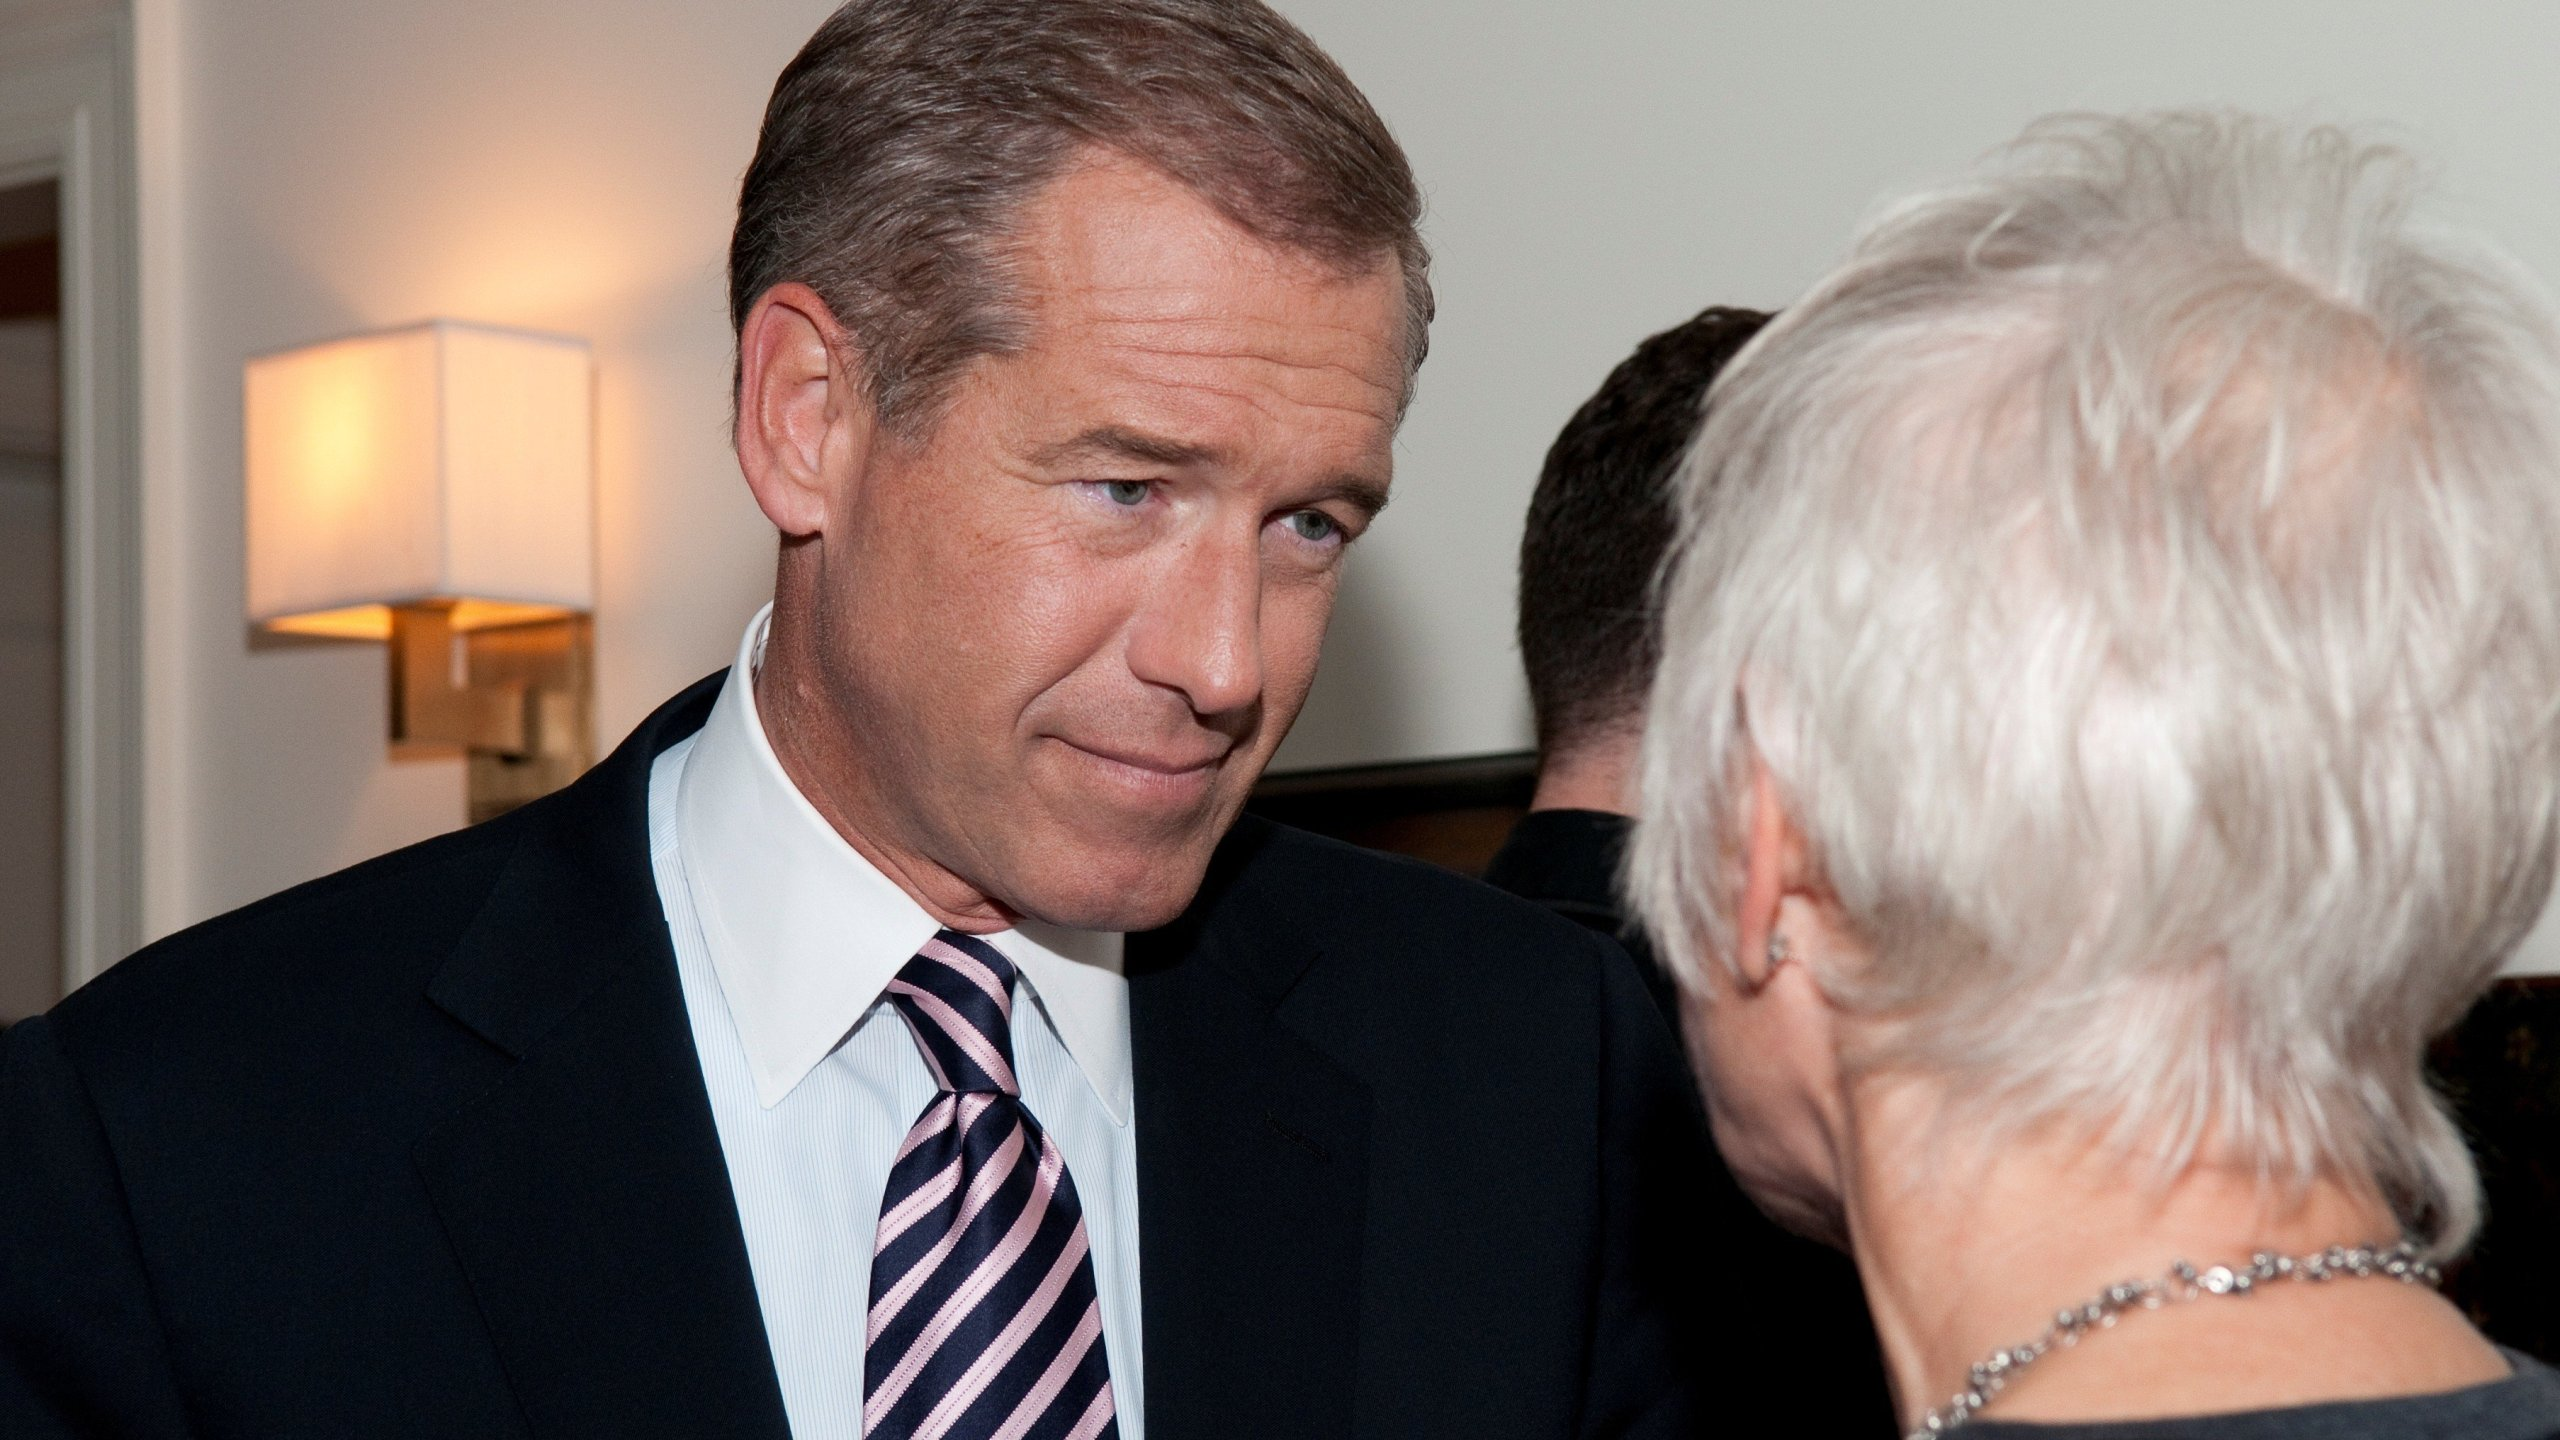 NBC Nightly News anchor Brian Williams appears at a book signing event on October 26, 2011 Photo: Lorenzo Bevilaqua/CNN